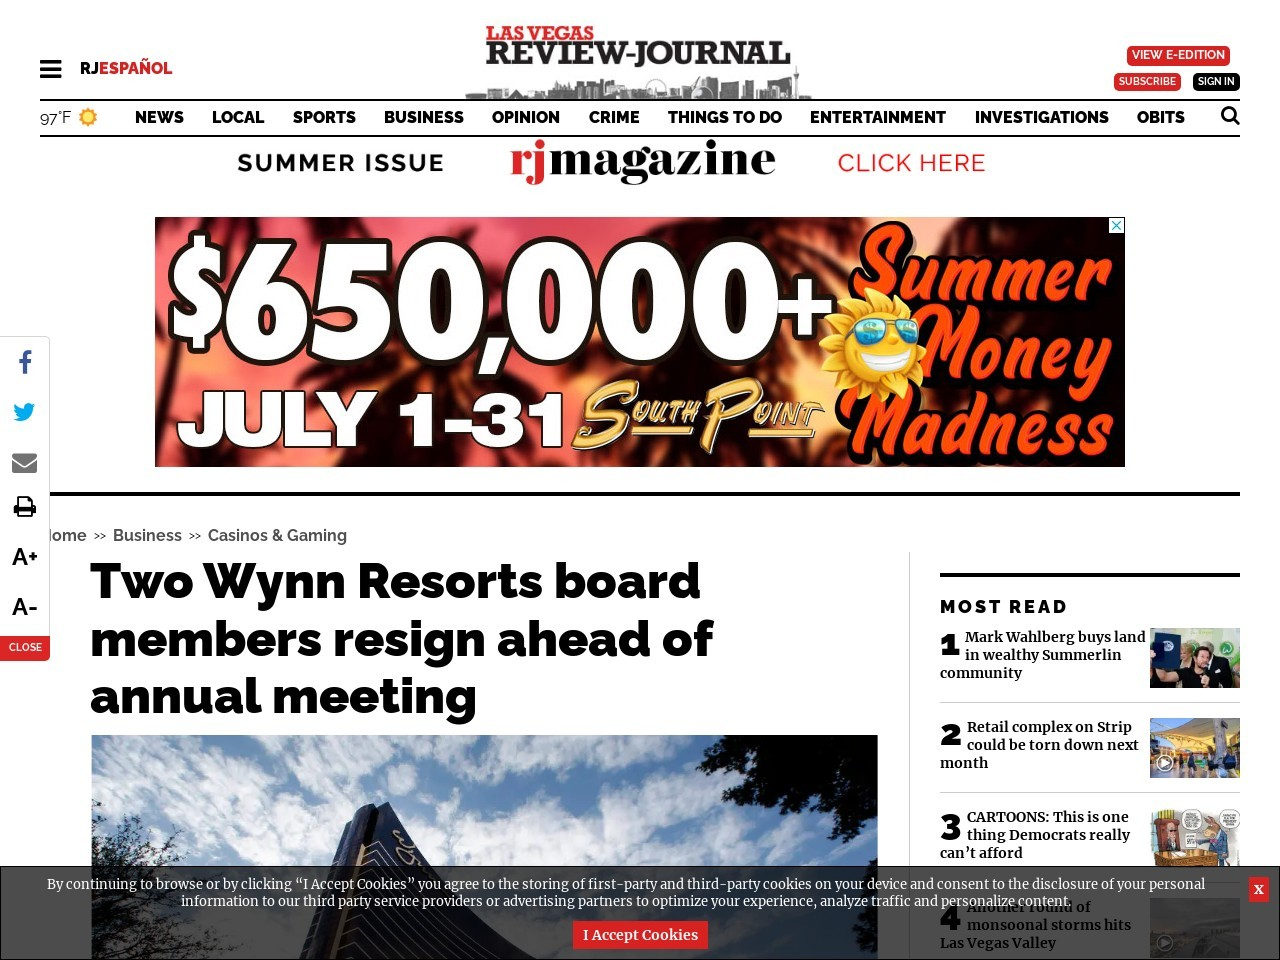 Two Wynn Resorts board members resign ahead of annual meeting